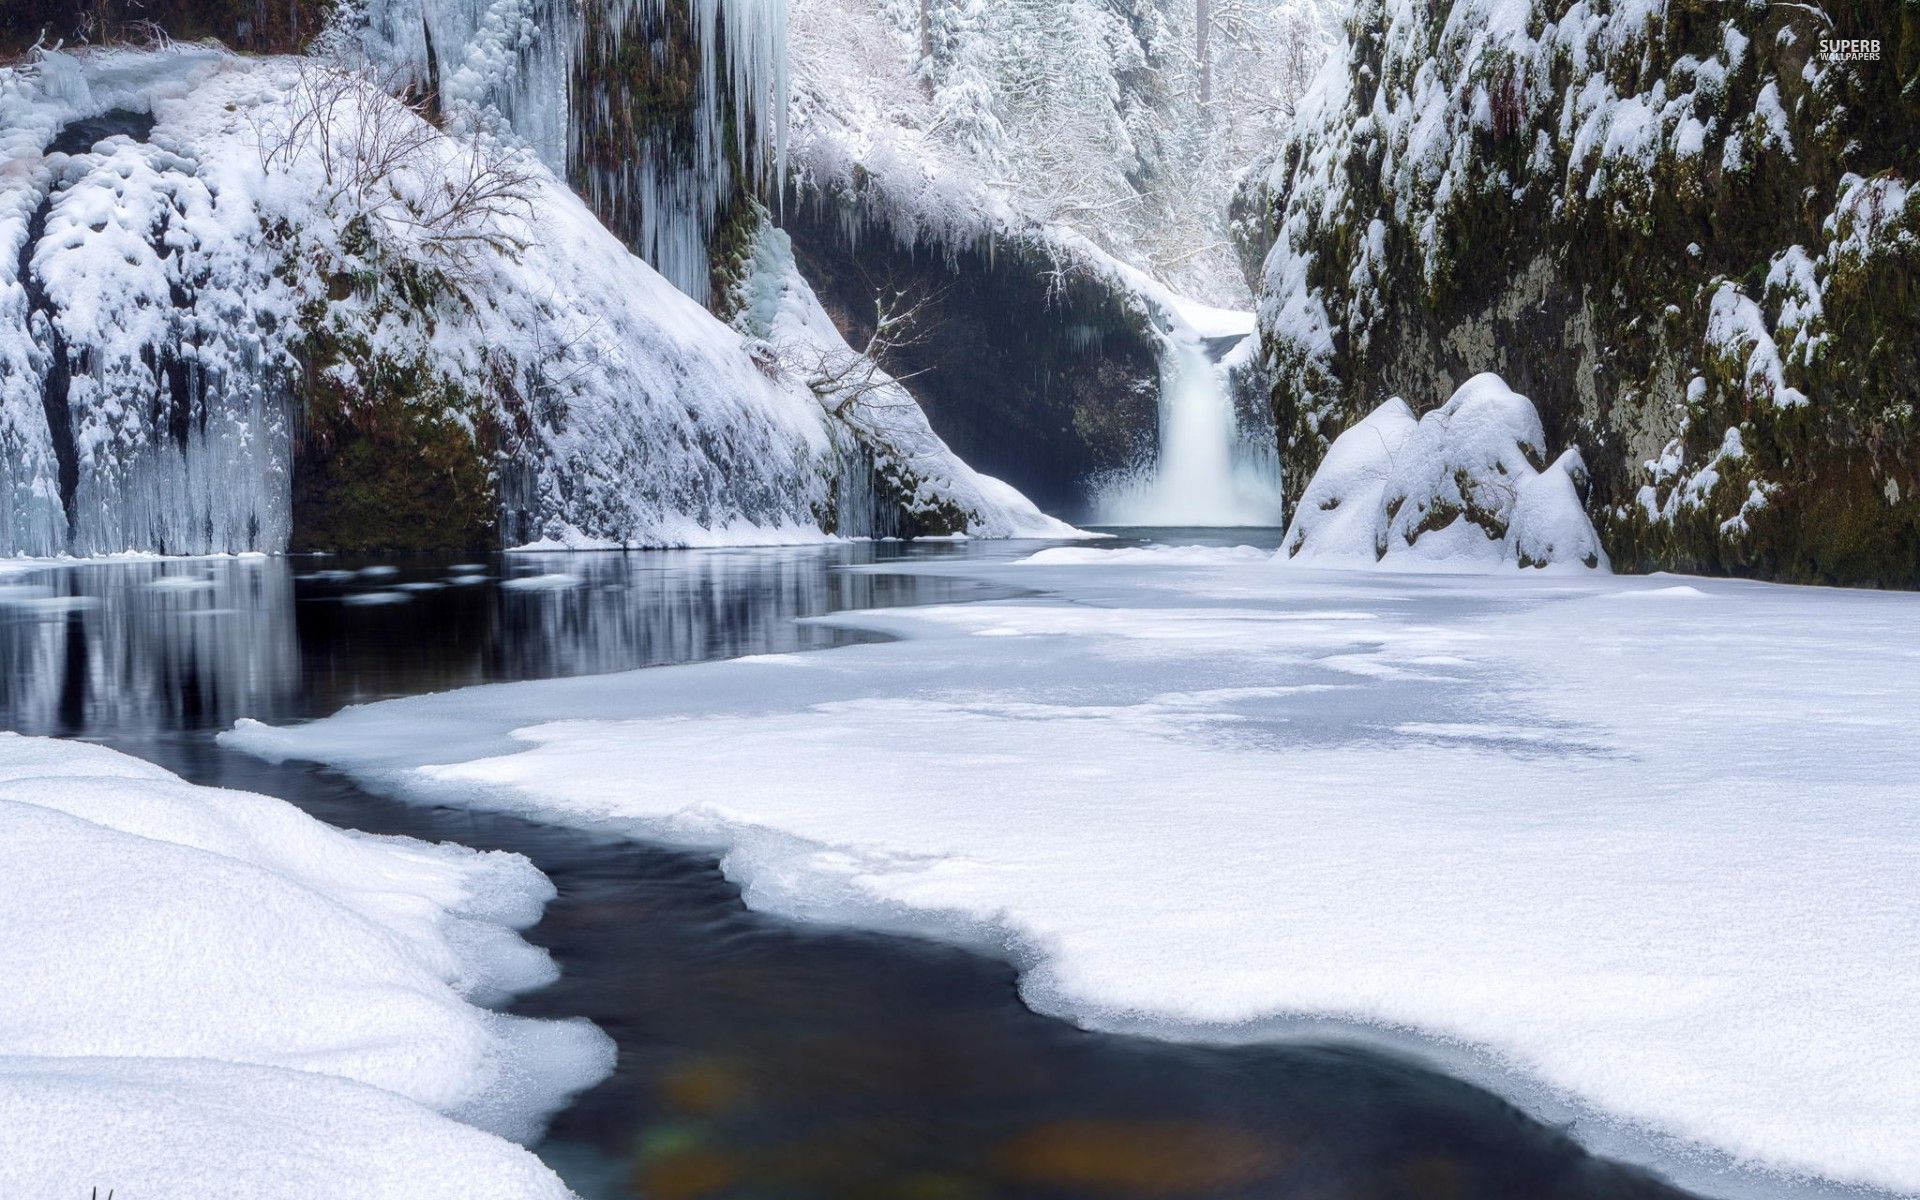 Free Wallpaper Downloads For Fall Waterfall River Snowy Forest Wallpapers Waterfall River